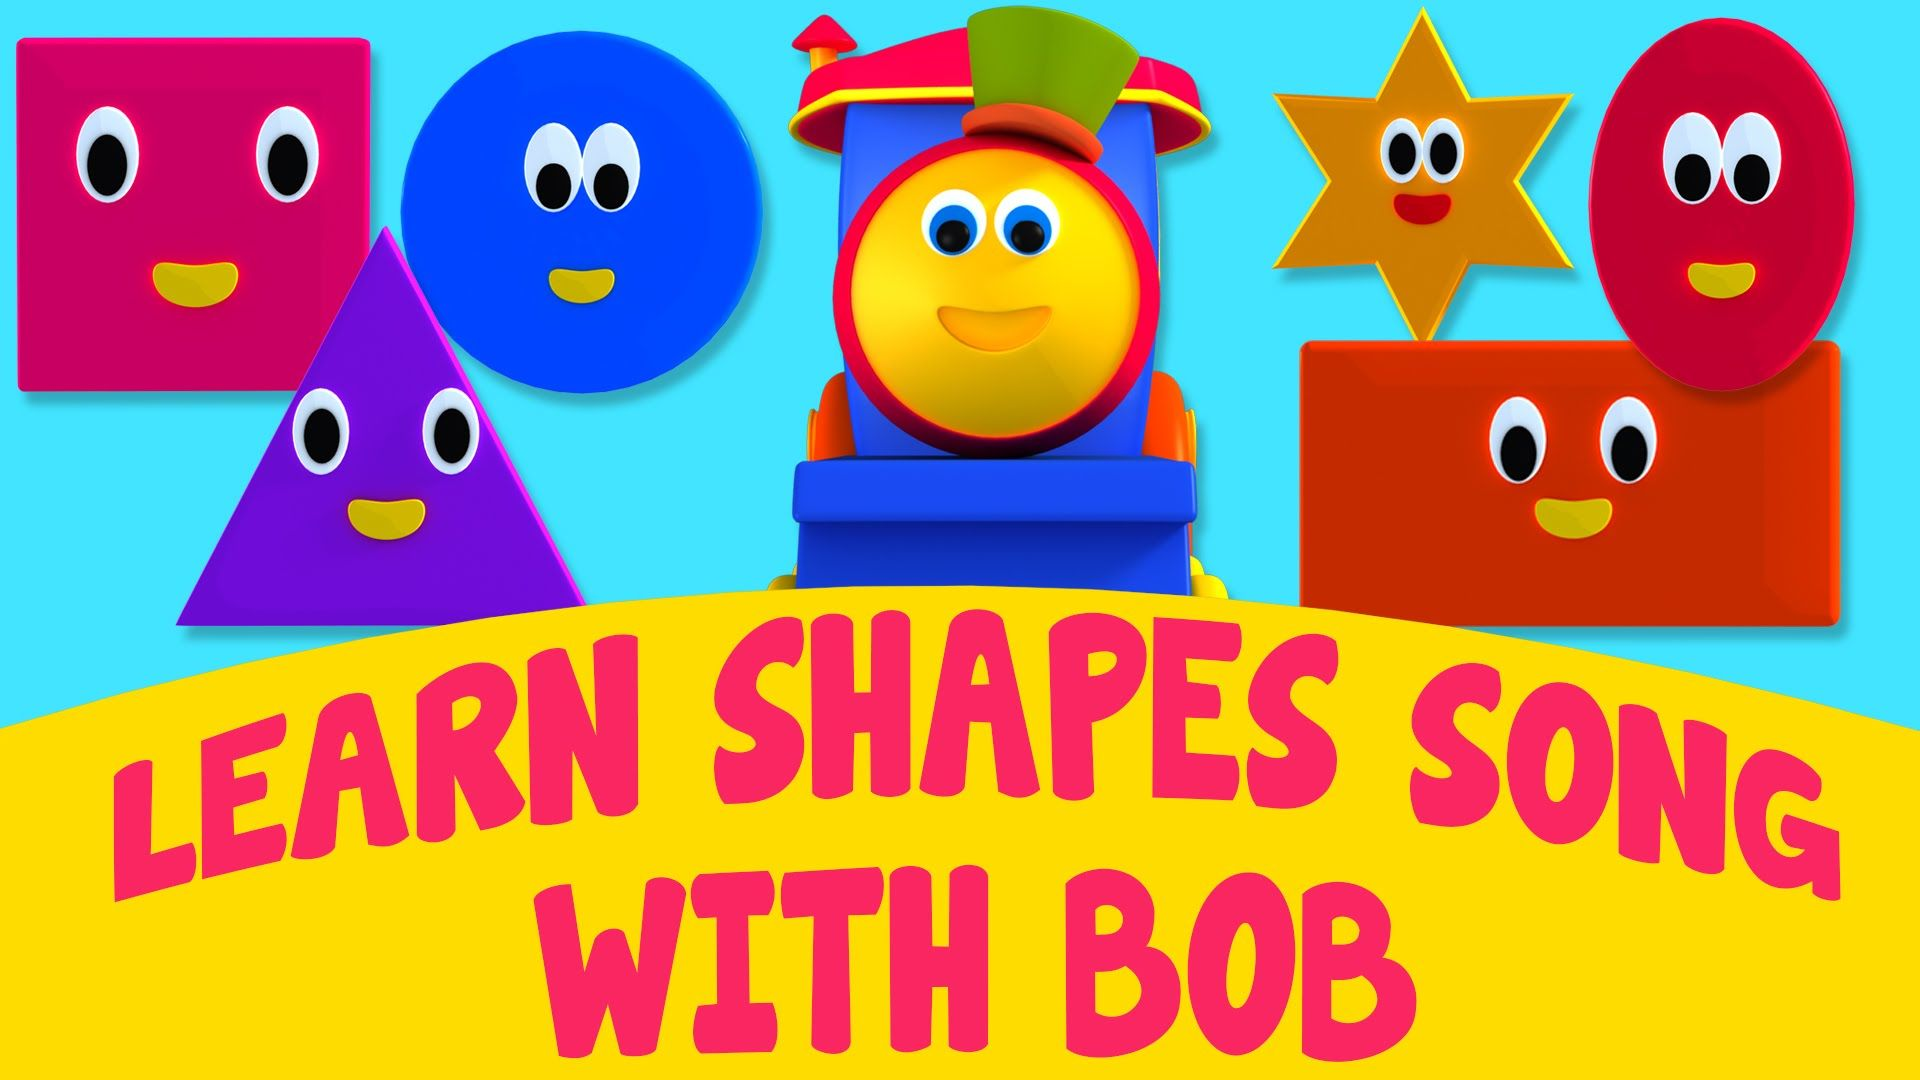 Bob, The Train - #LearnShapesSong With Bob | #ShapesSong | Adventure ...